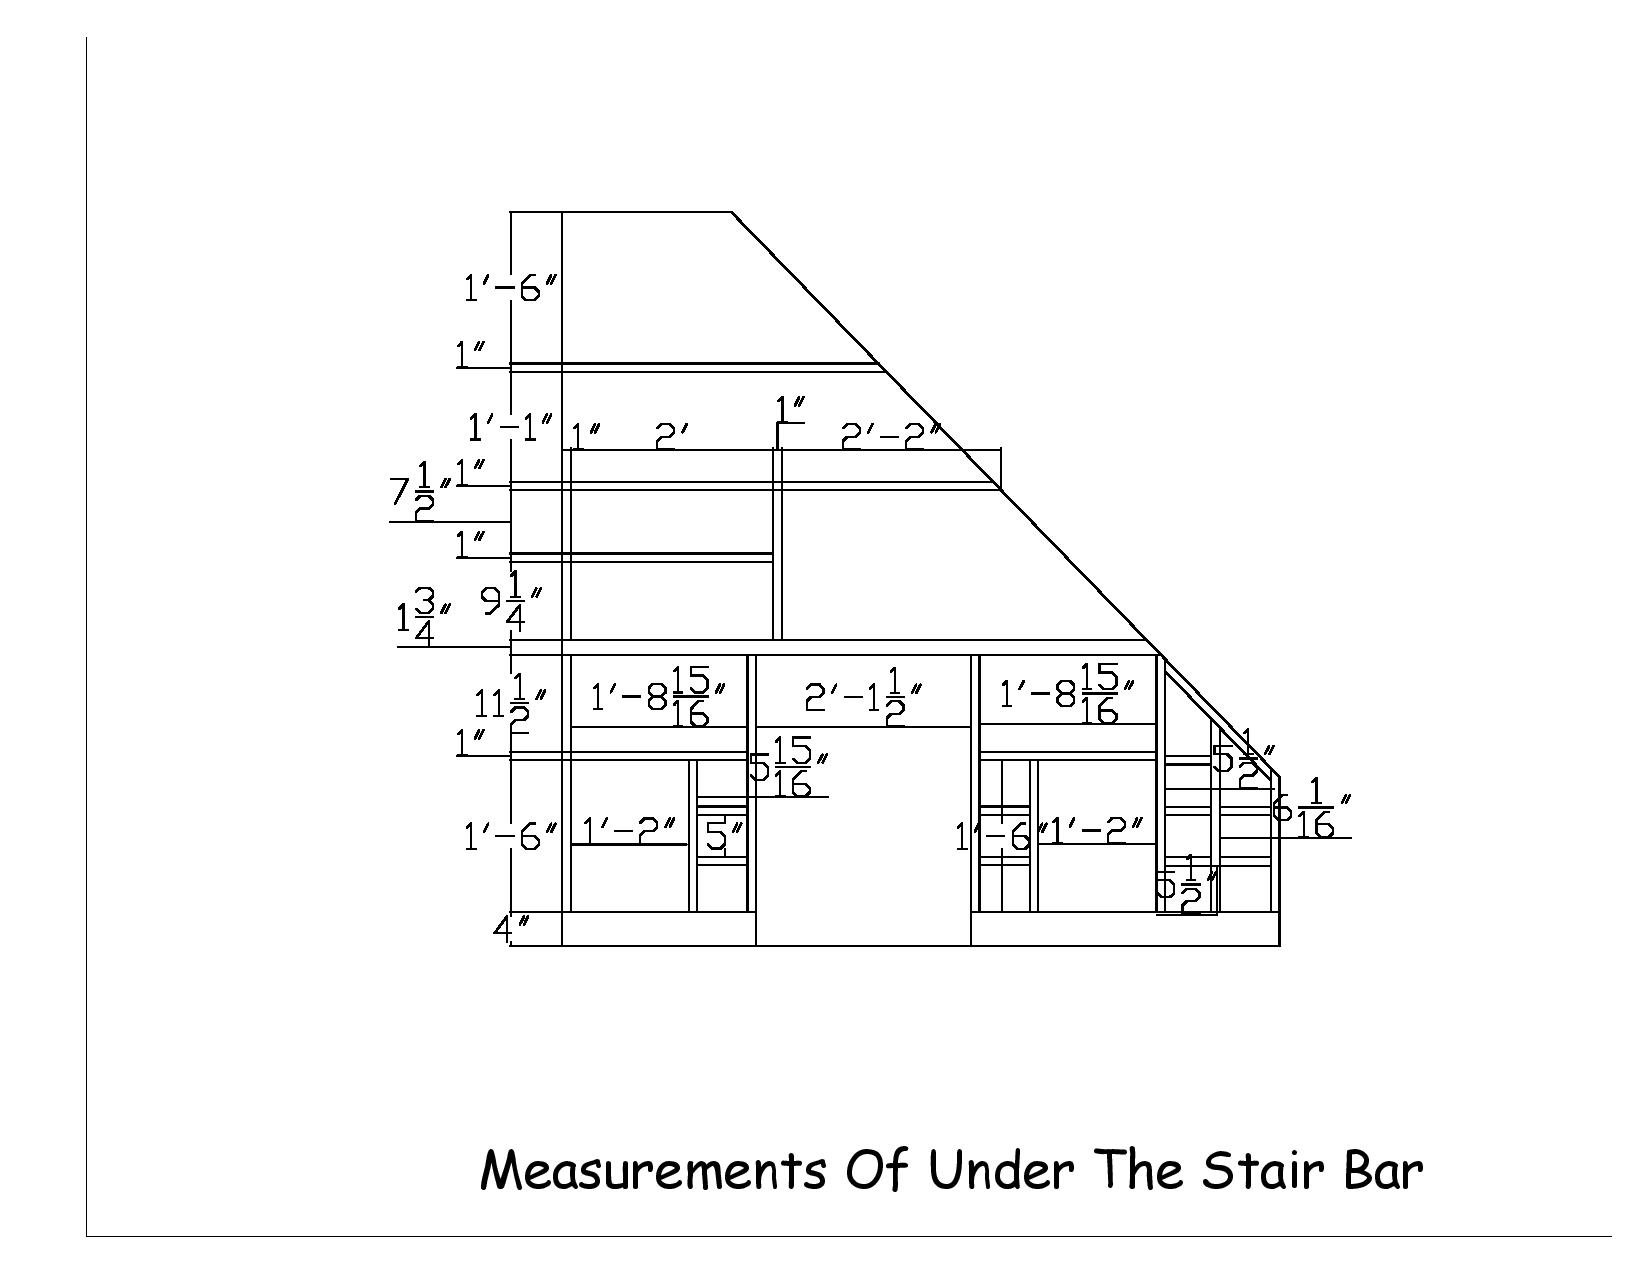 Emma And Marty Basement Bar Measurements -page-001.jpg